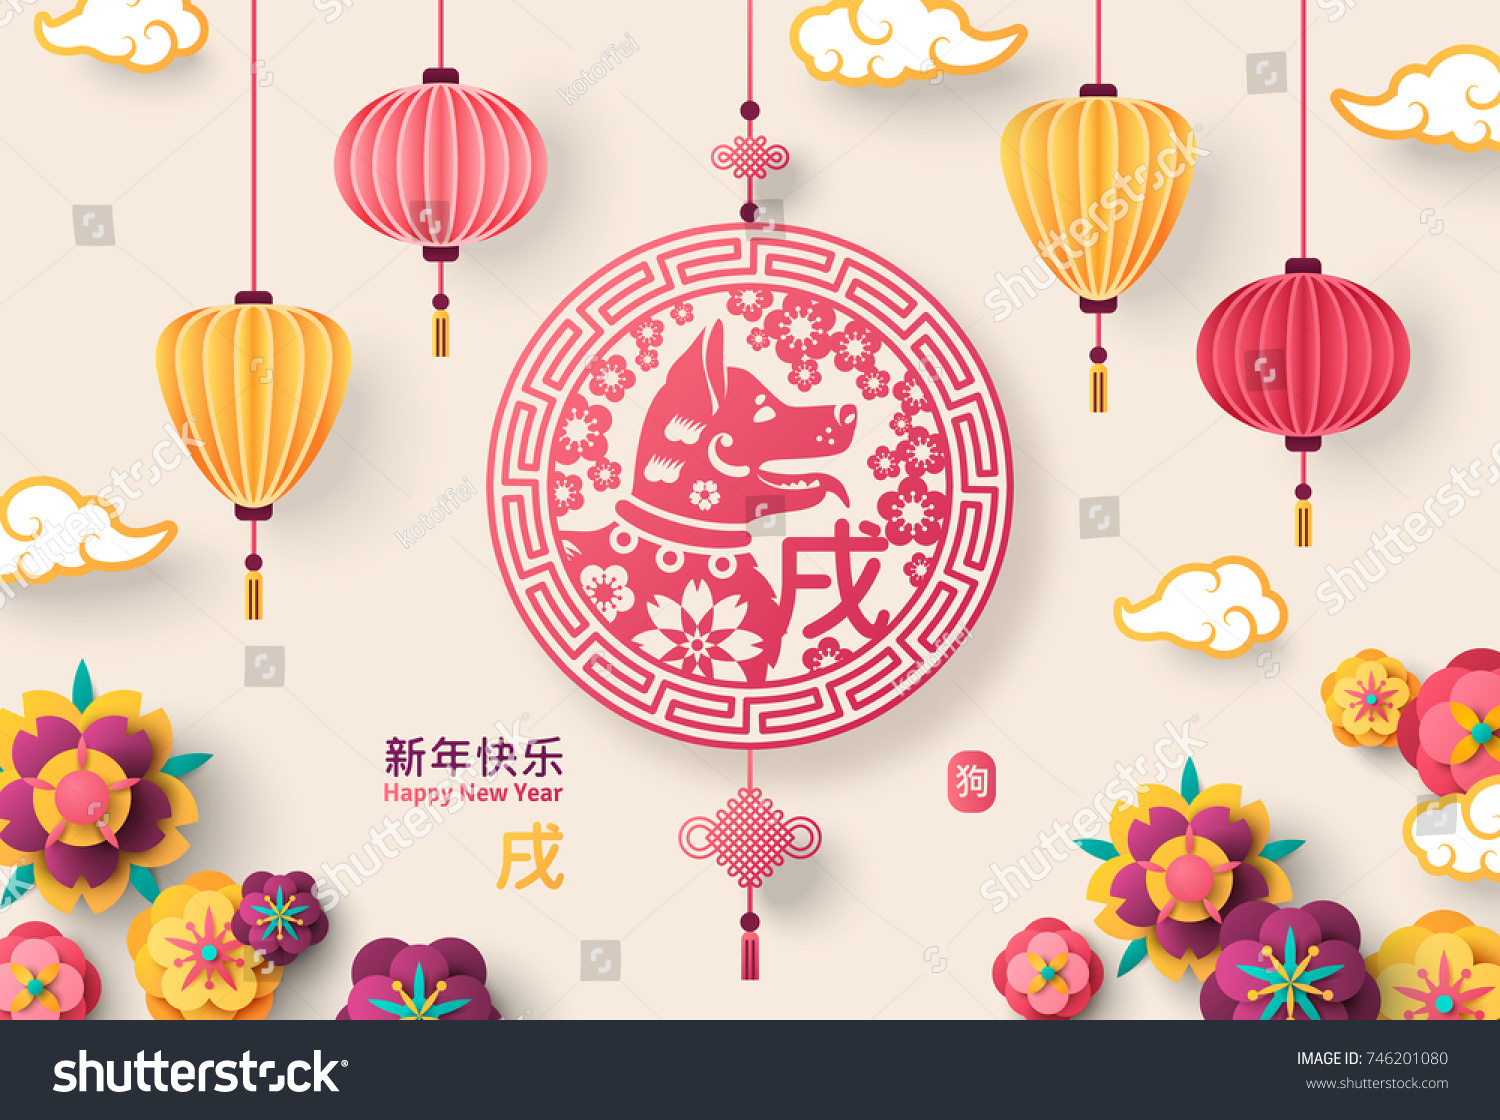 2018 chinese greeting card hanging emblem stock vector royalty free 2018 chinese greeting card with hanging emblem paper oriental flowers and asian clouds on light m4hsunfo